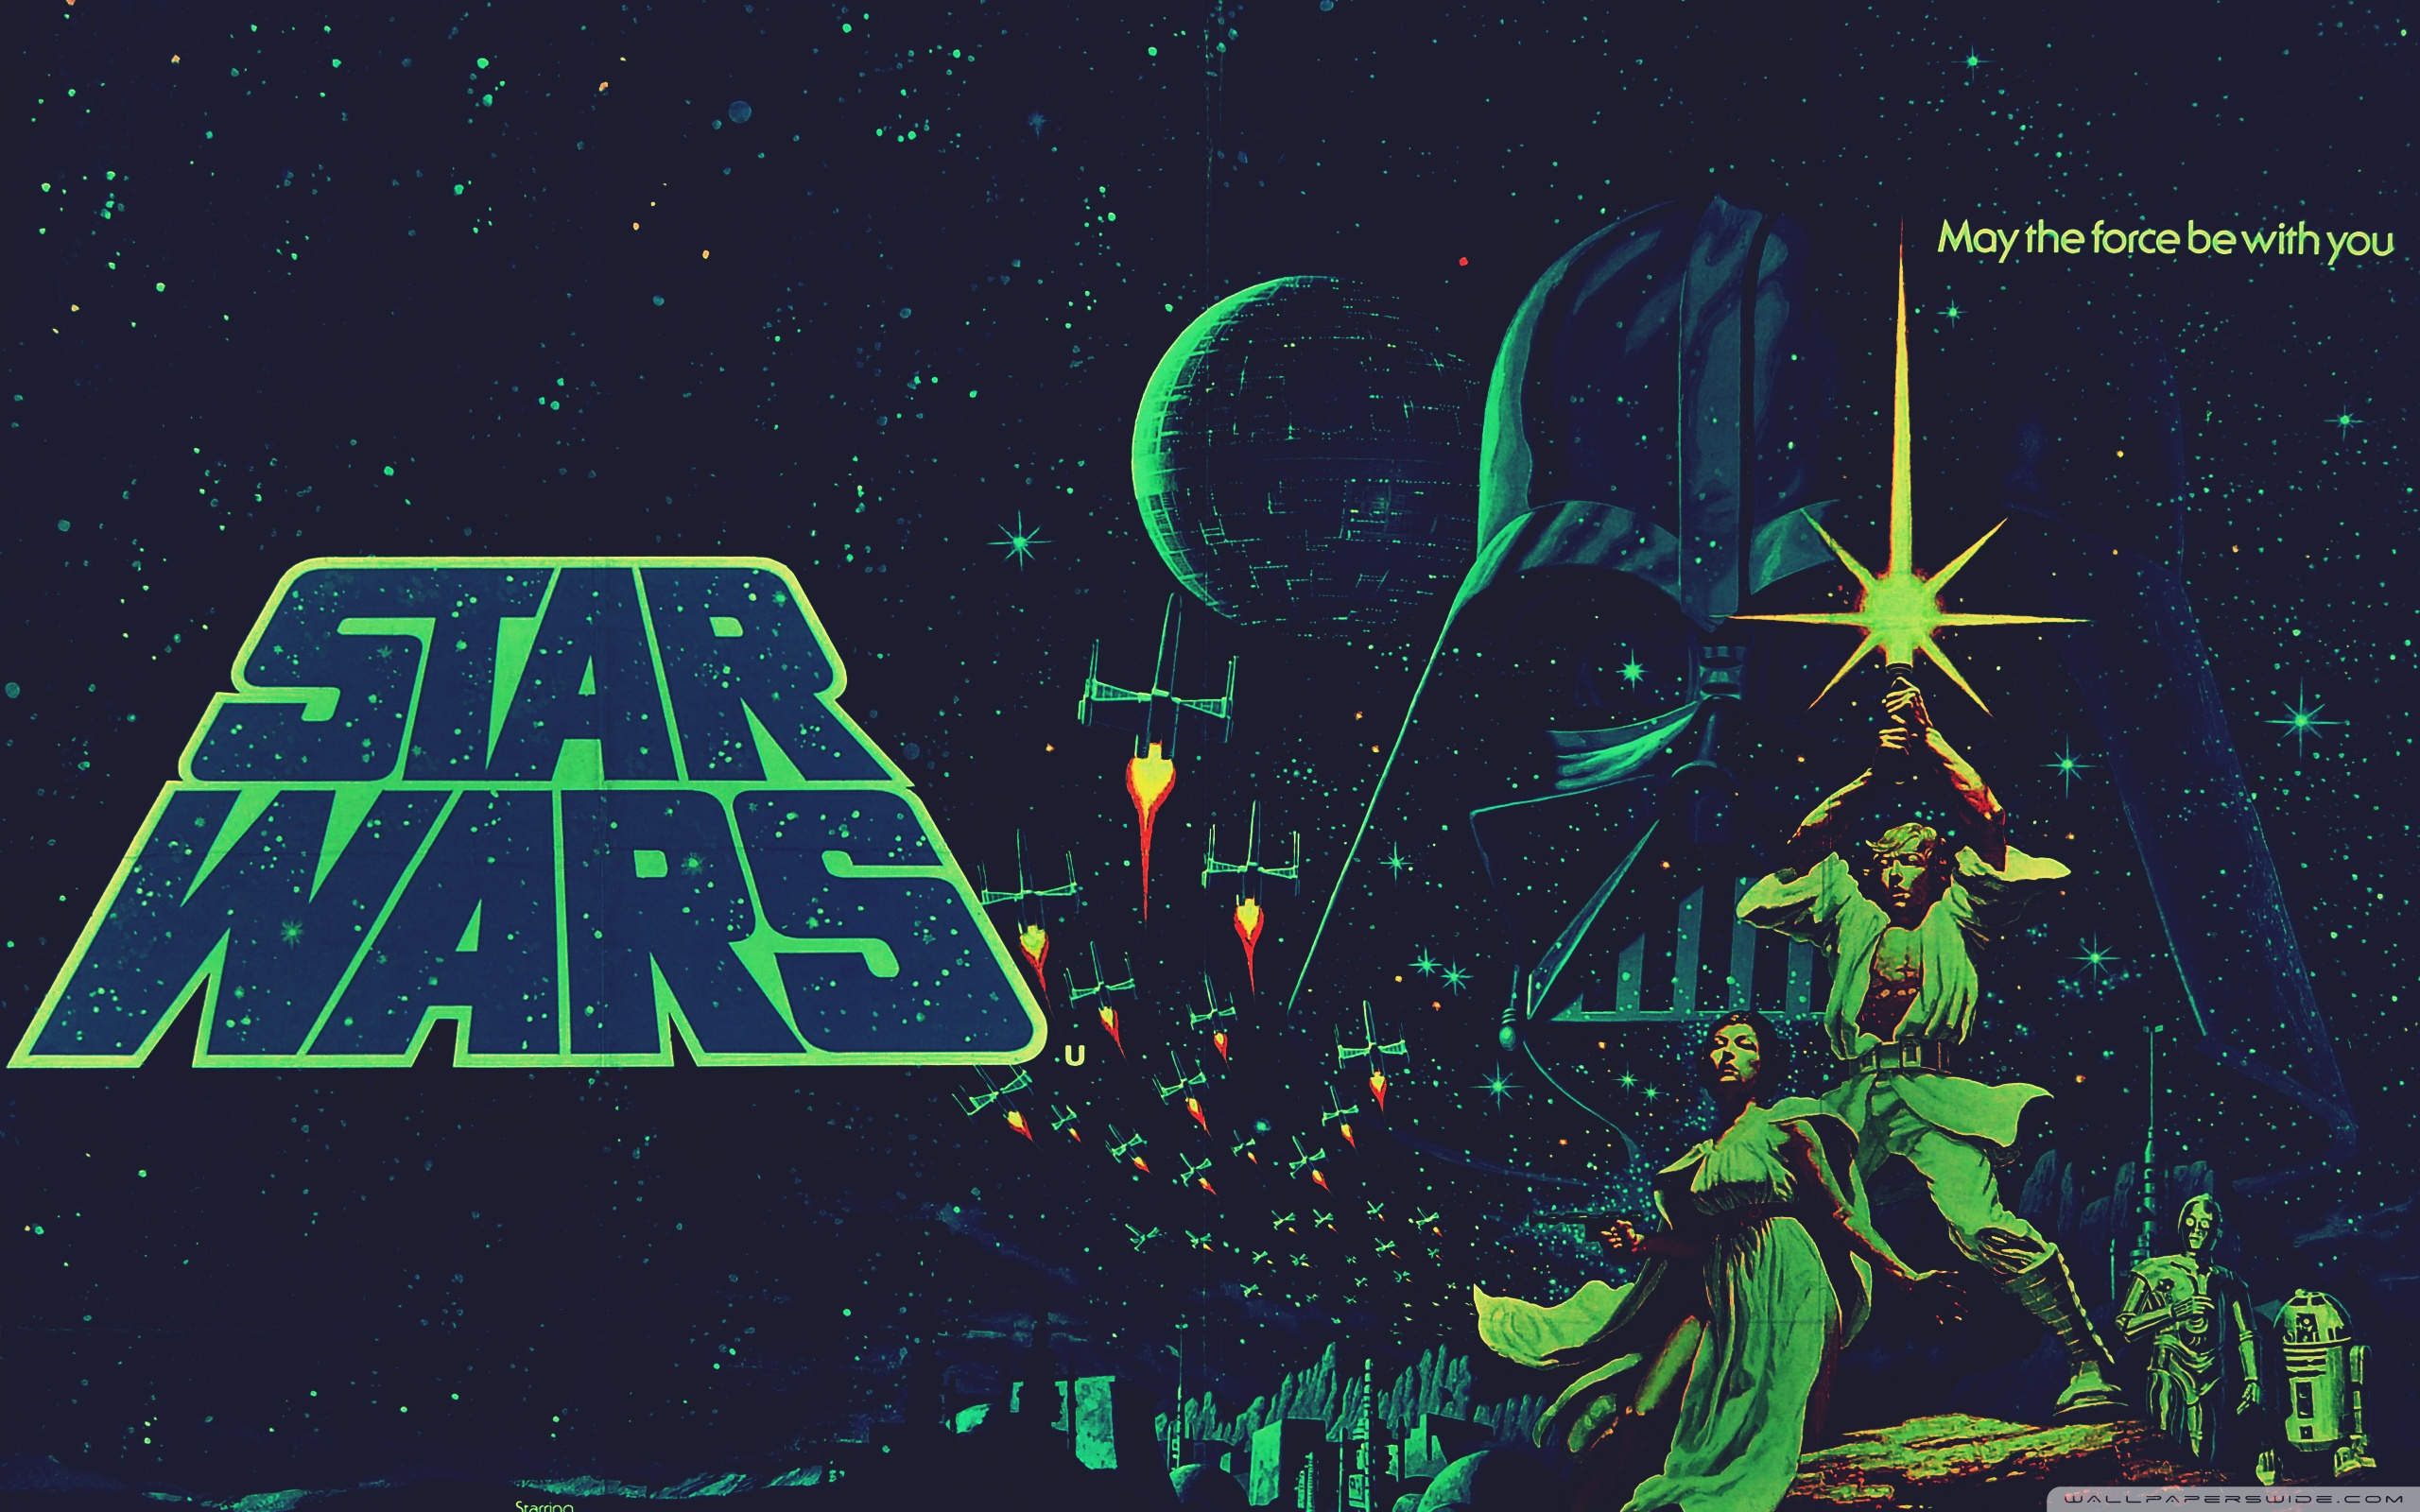 Retro Star Wars Wallpaper